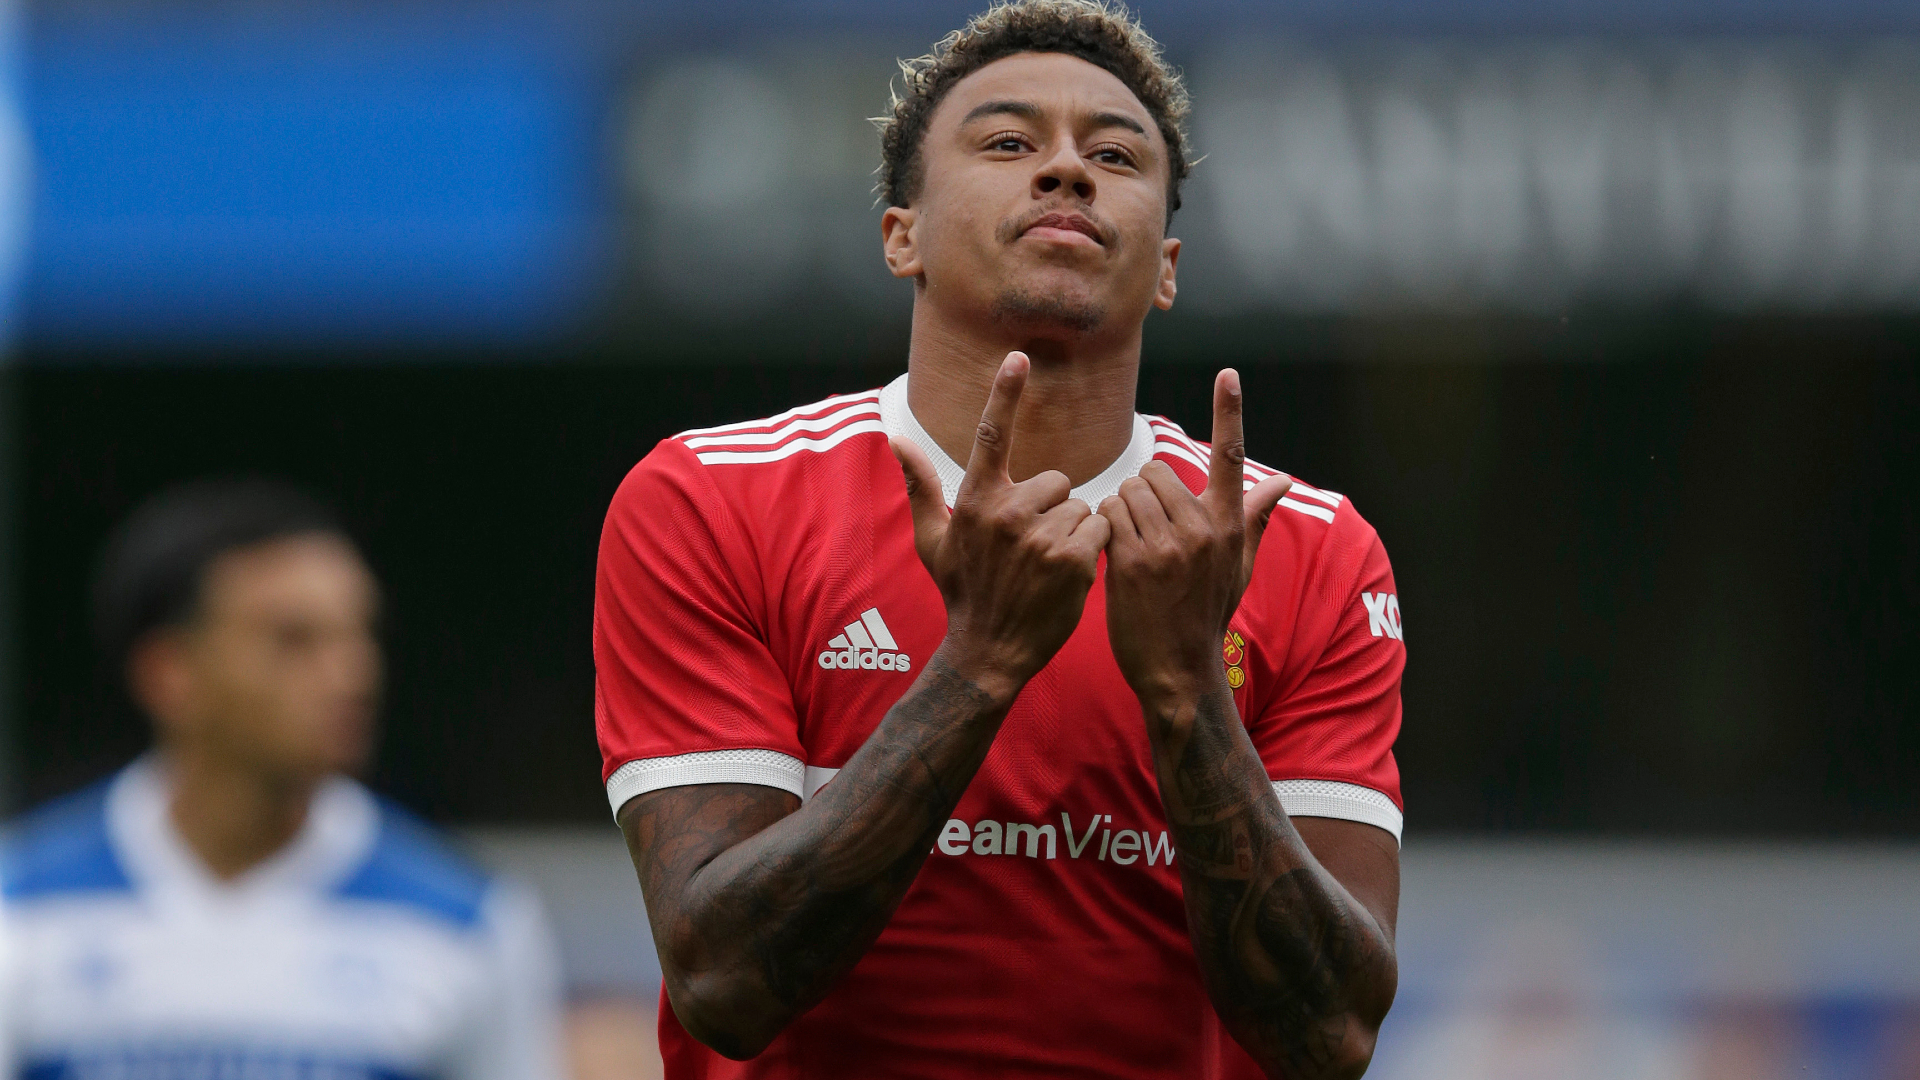 'I resorted to drinking to ease the pain' – Lingard opens up on mental health struggles